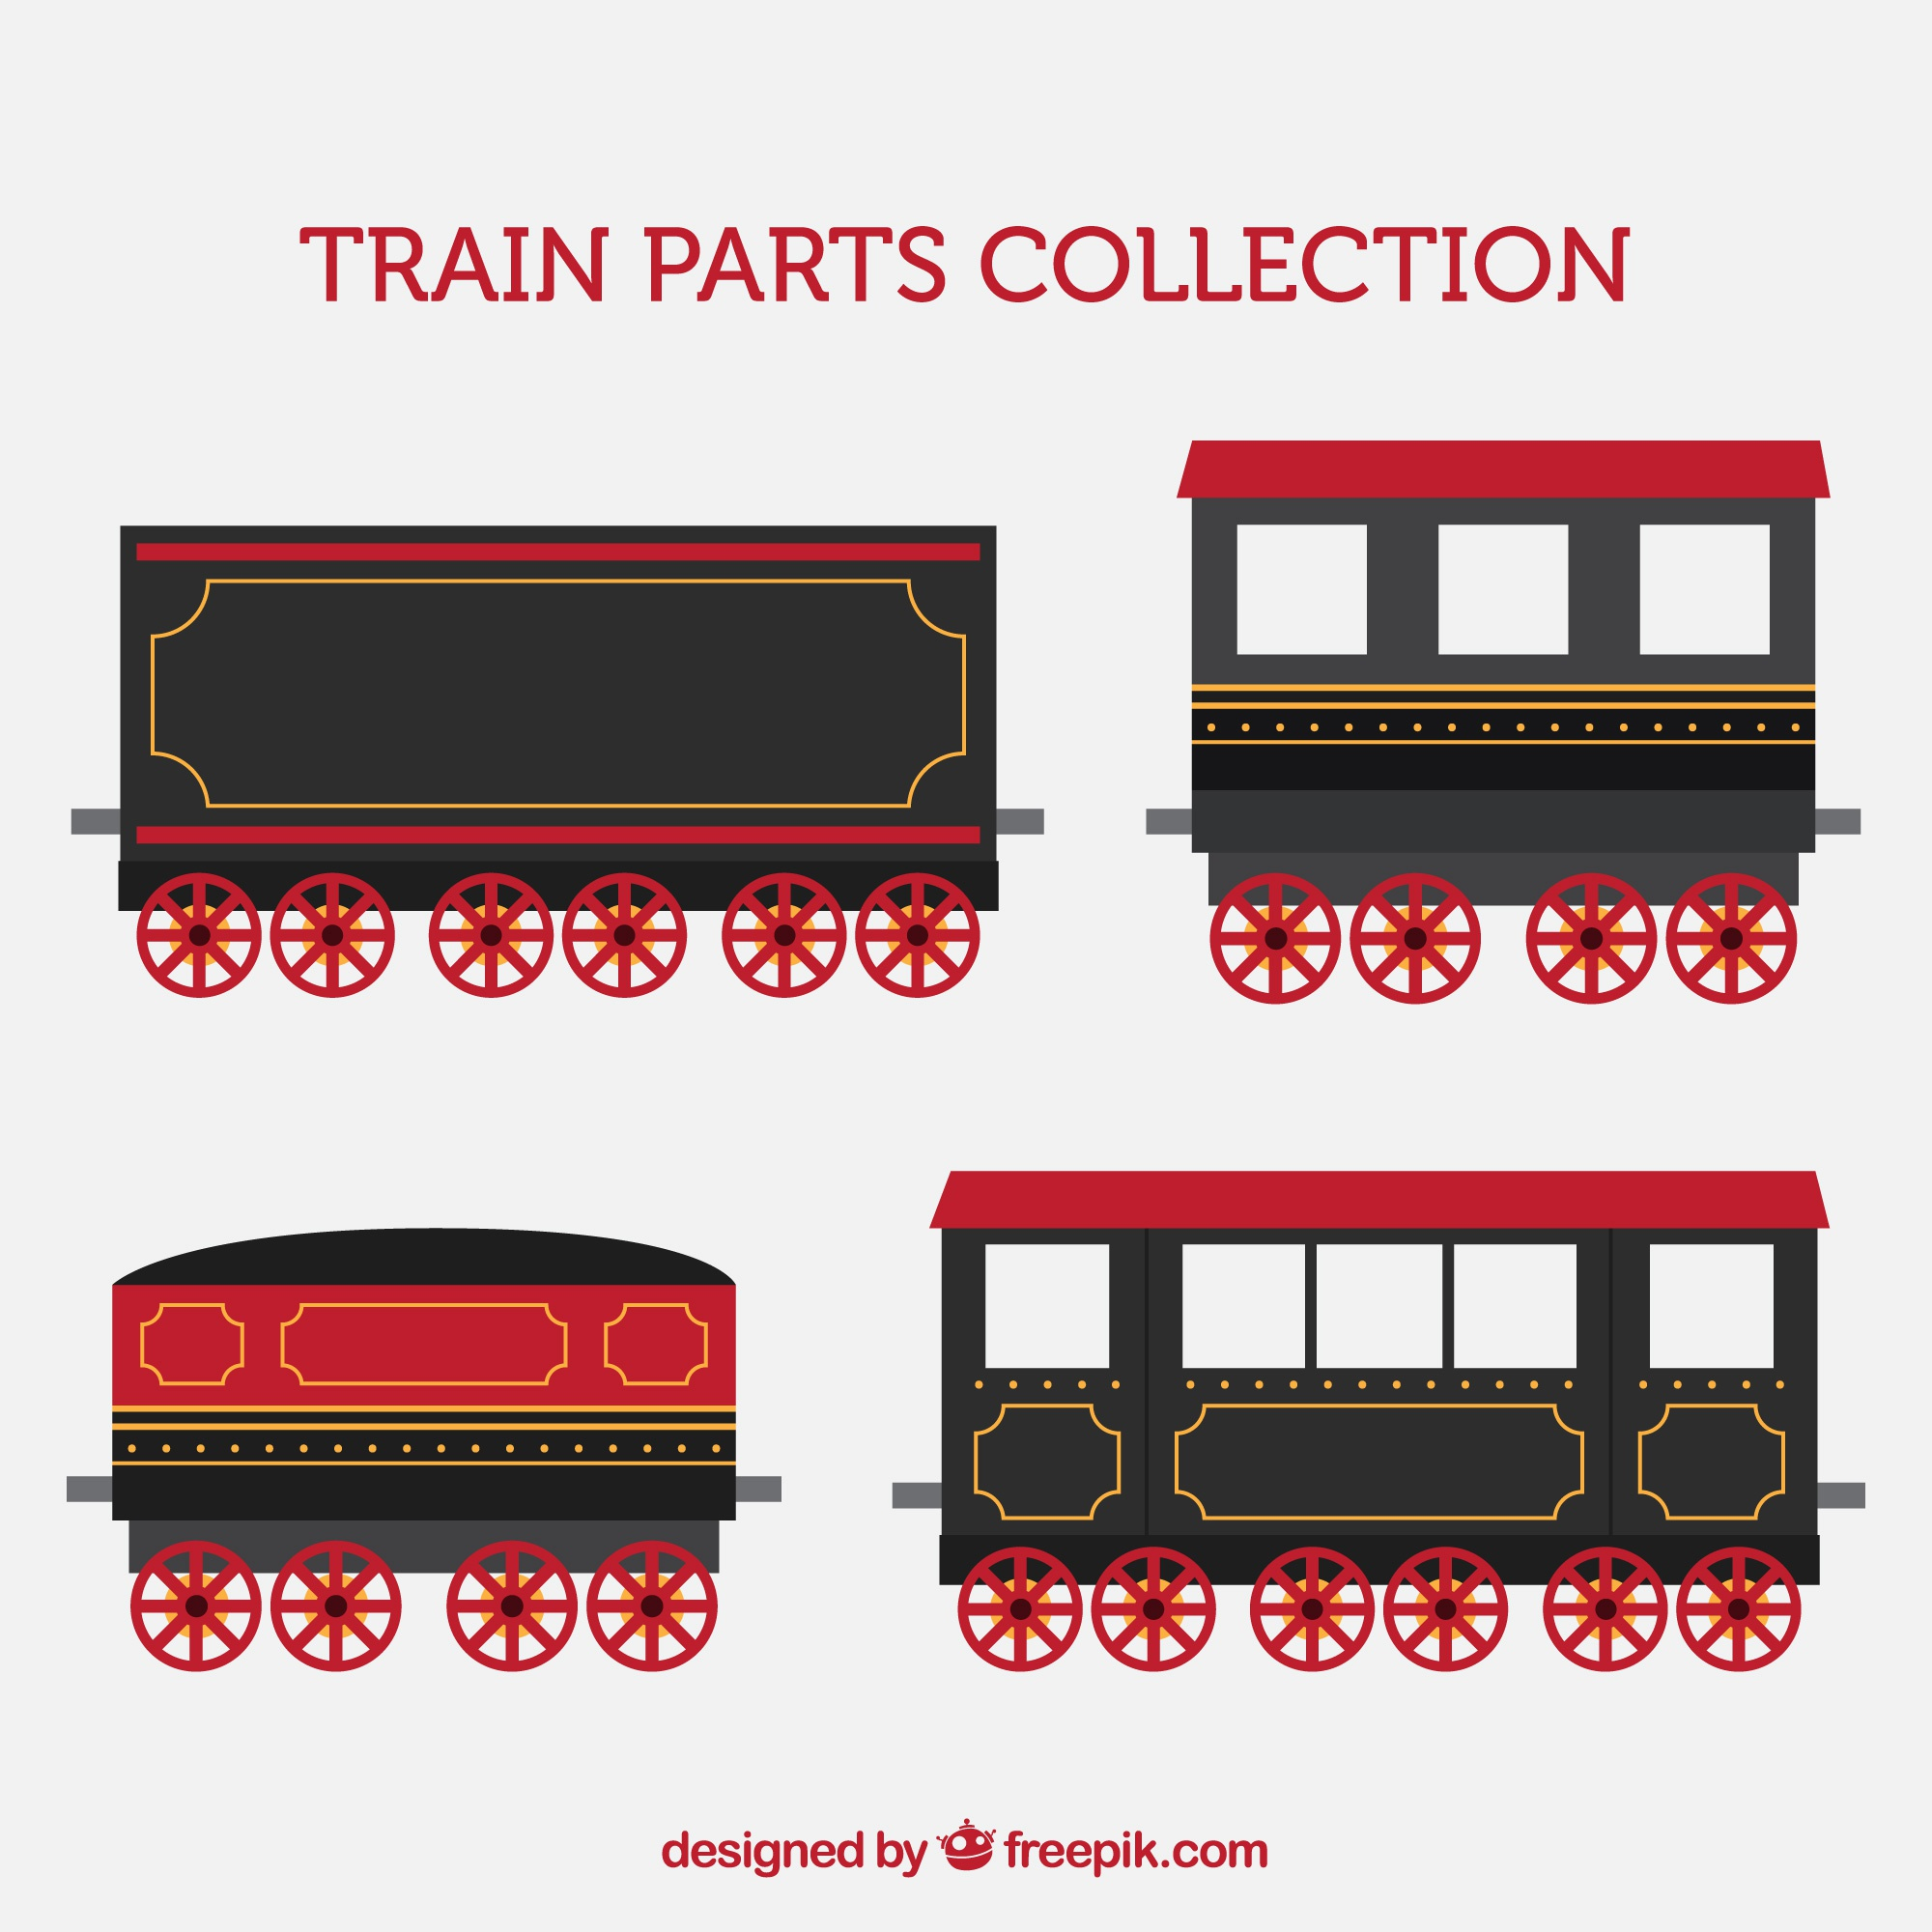 Collection of train parts with red details